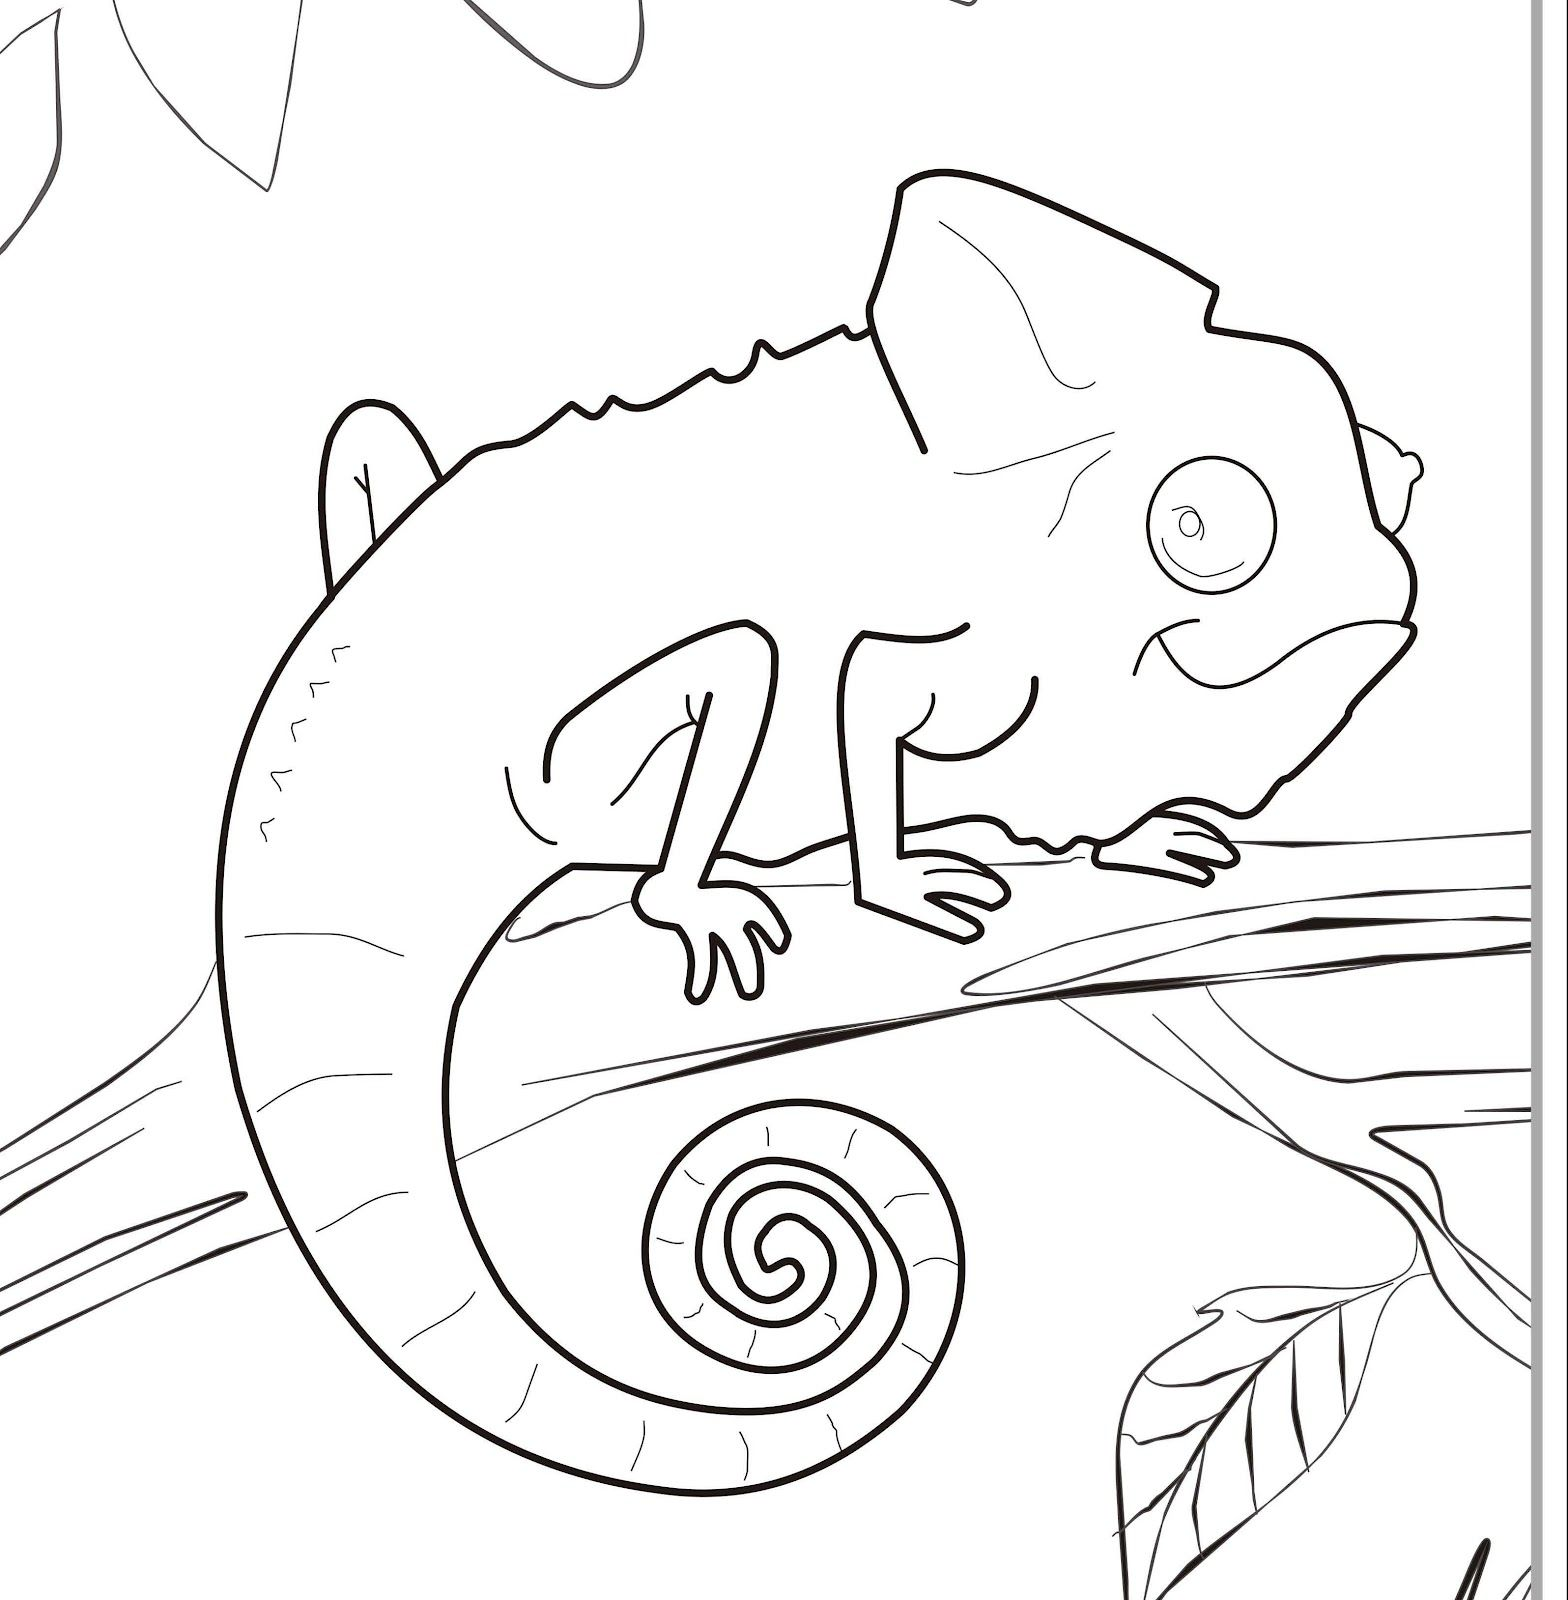 Download or print this amazing coloring page: Chameleon ...